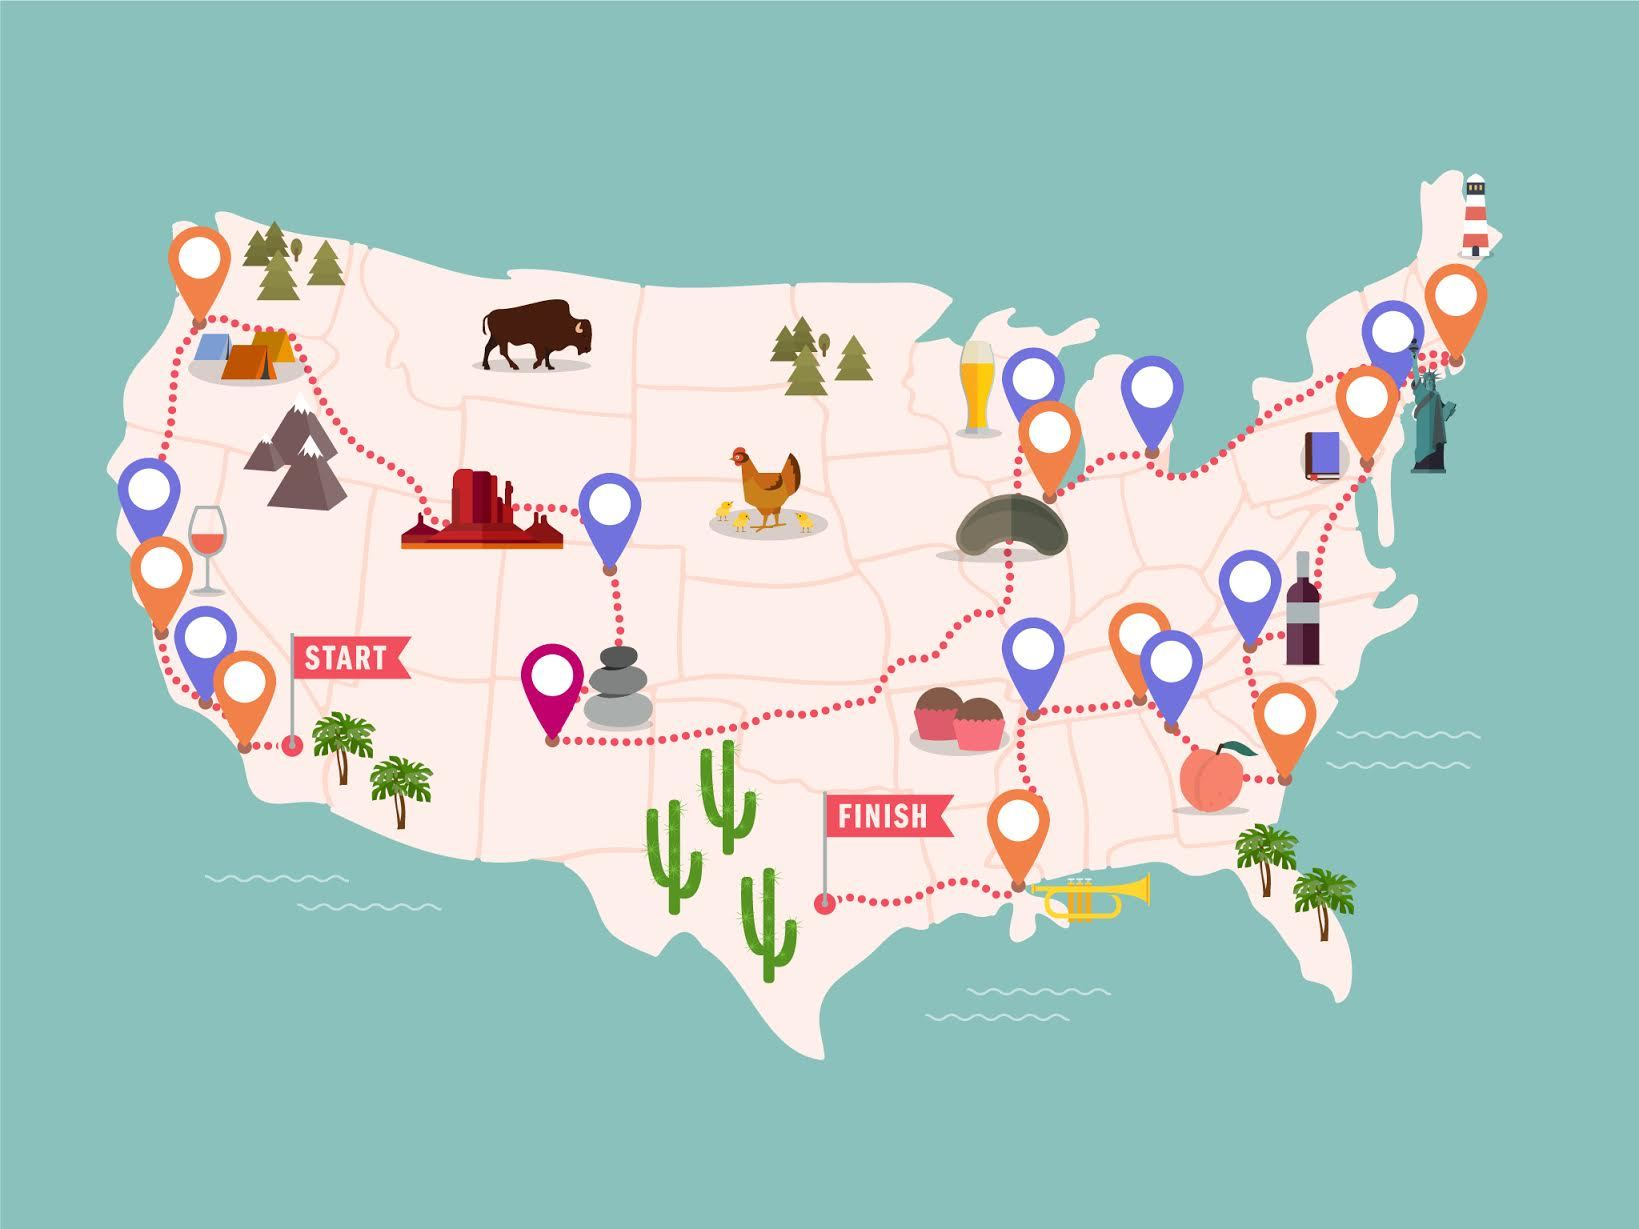 The ultimate USA road trip that celebrates Black businesses